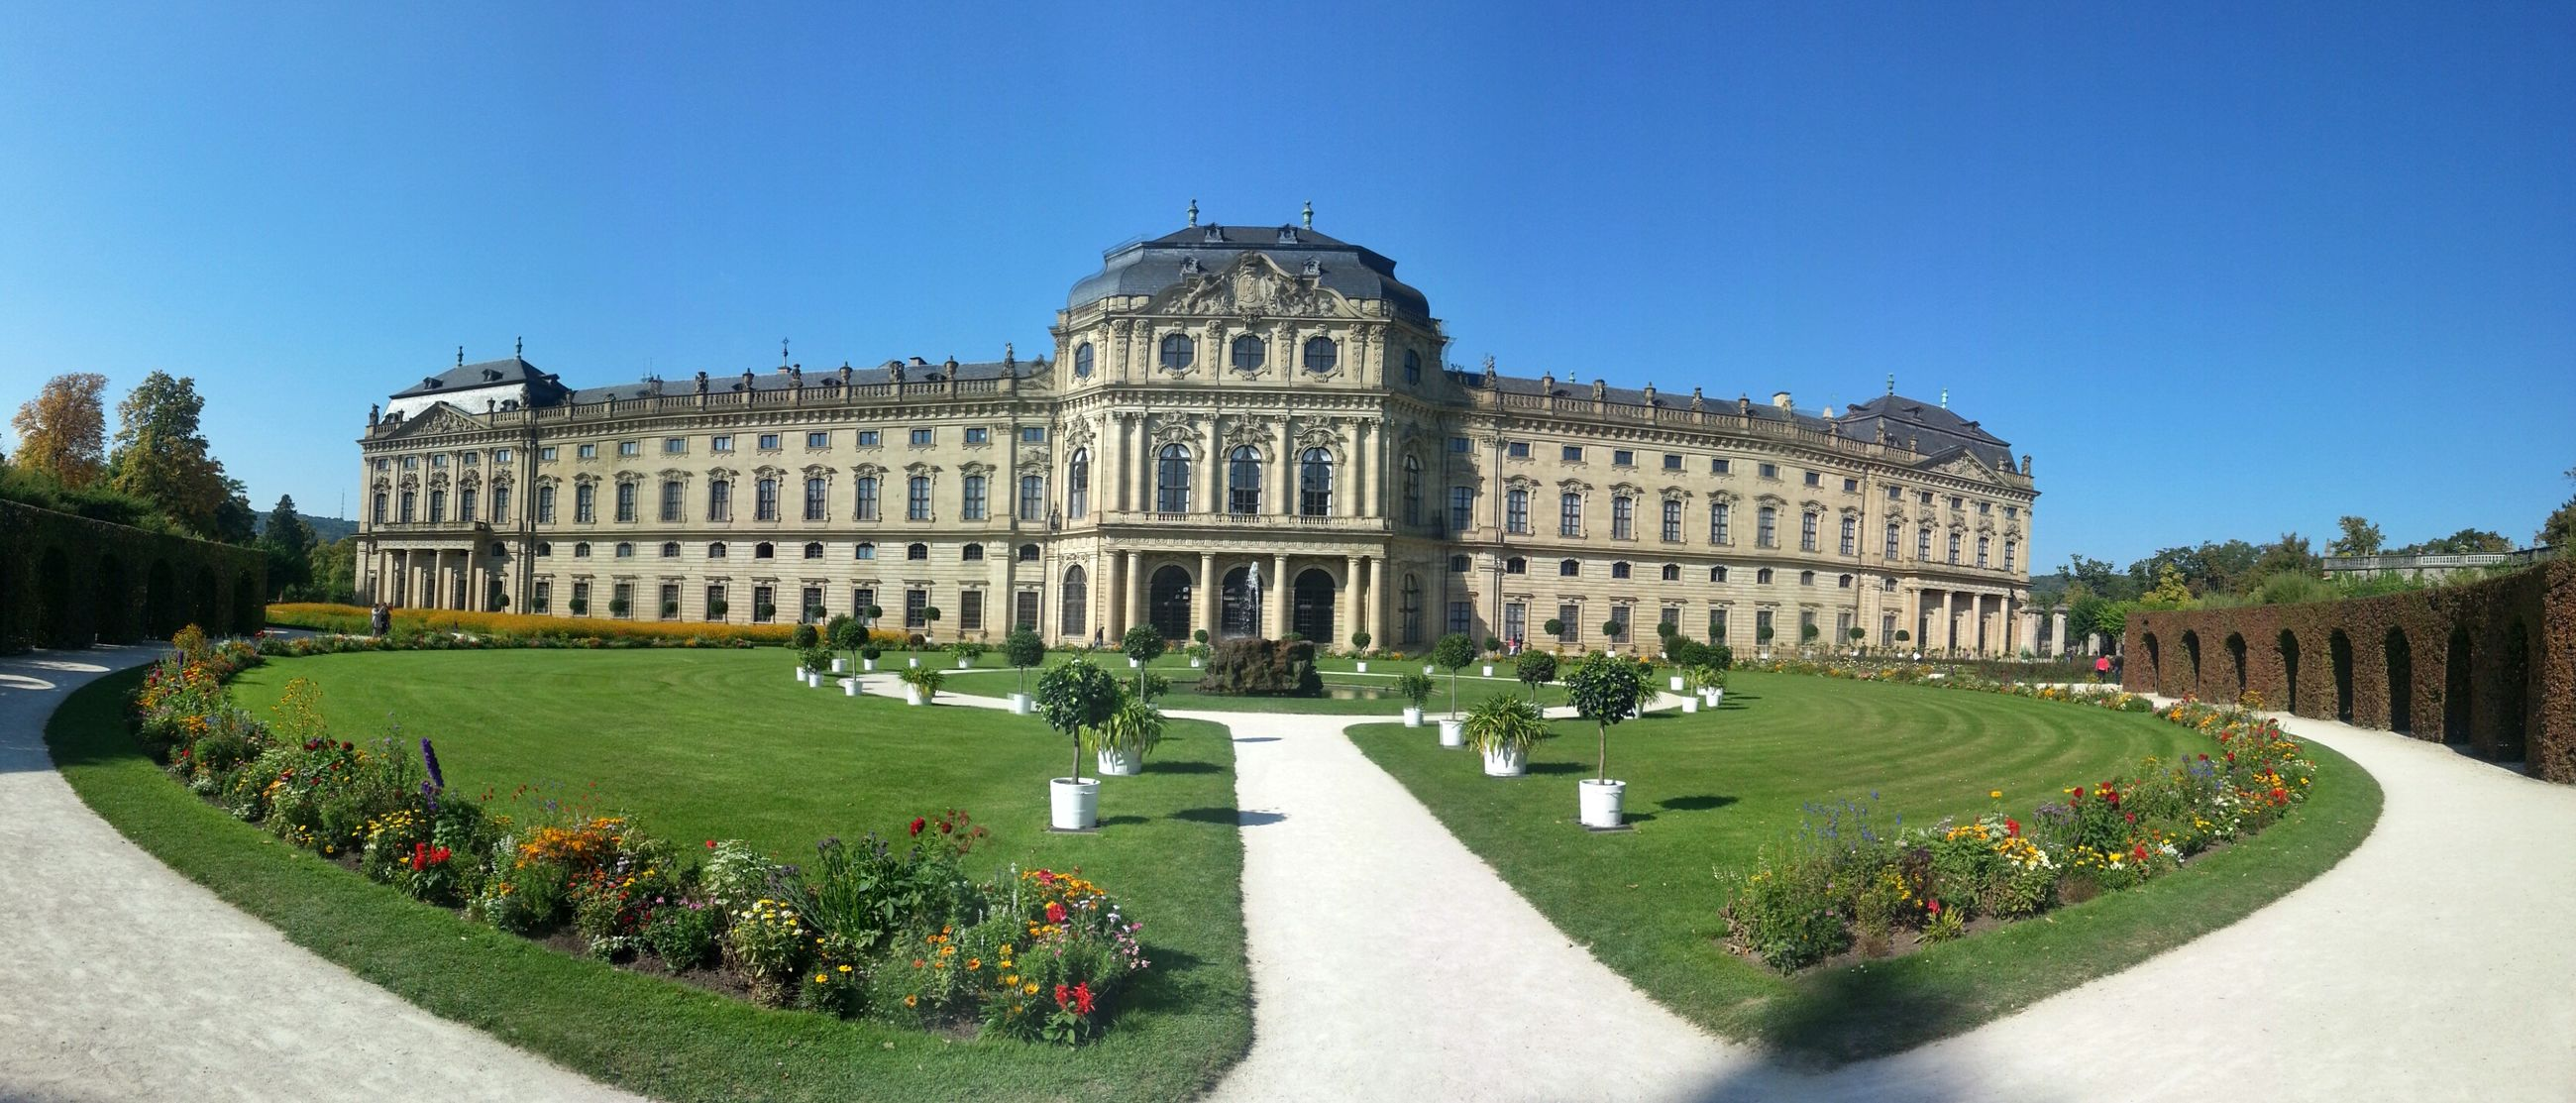 architecture, building exterior, built structure, grass, clear sky, lawn, famous place, tree, travel destinations, history, tourism, fountain, blue, facade, travel, incidental people, dome, formal garden, international landmark, city